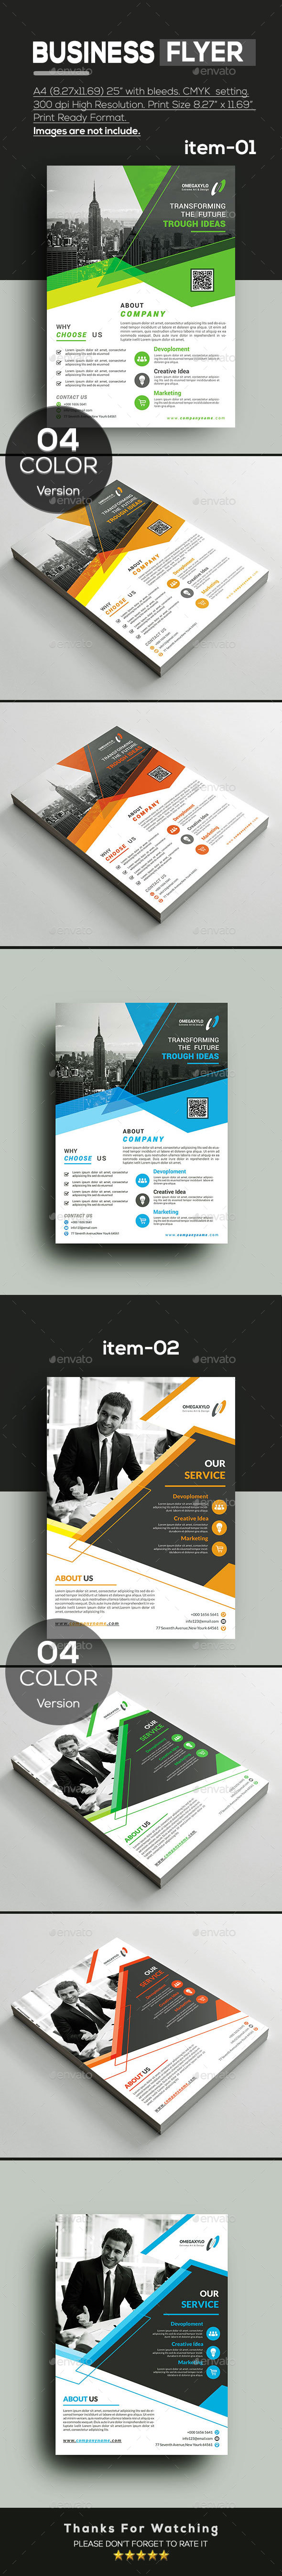 Flyer Bundle 2 In 1 - Corporate Flyers